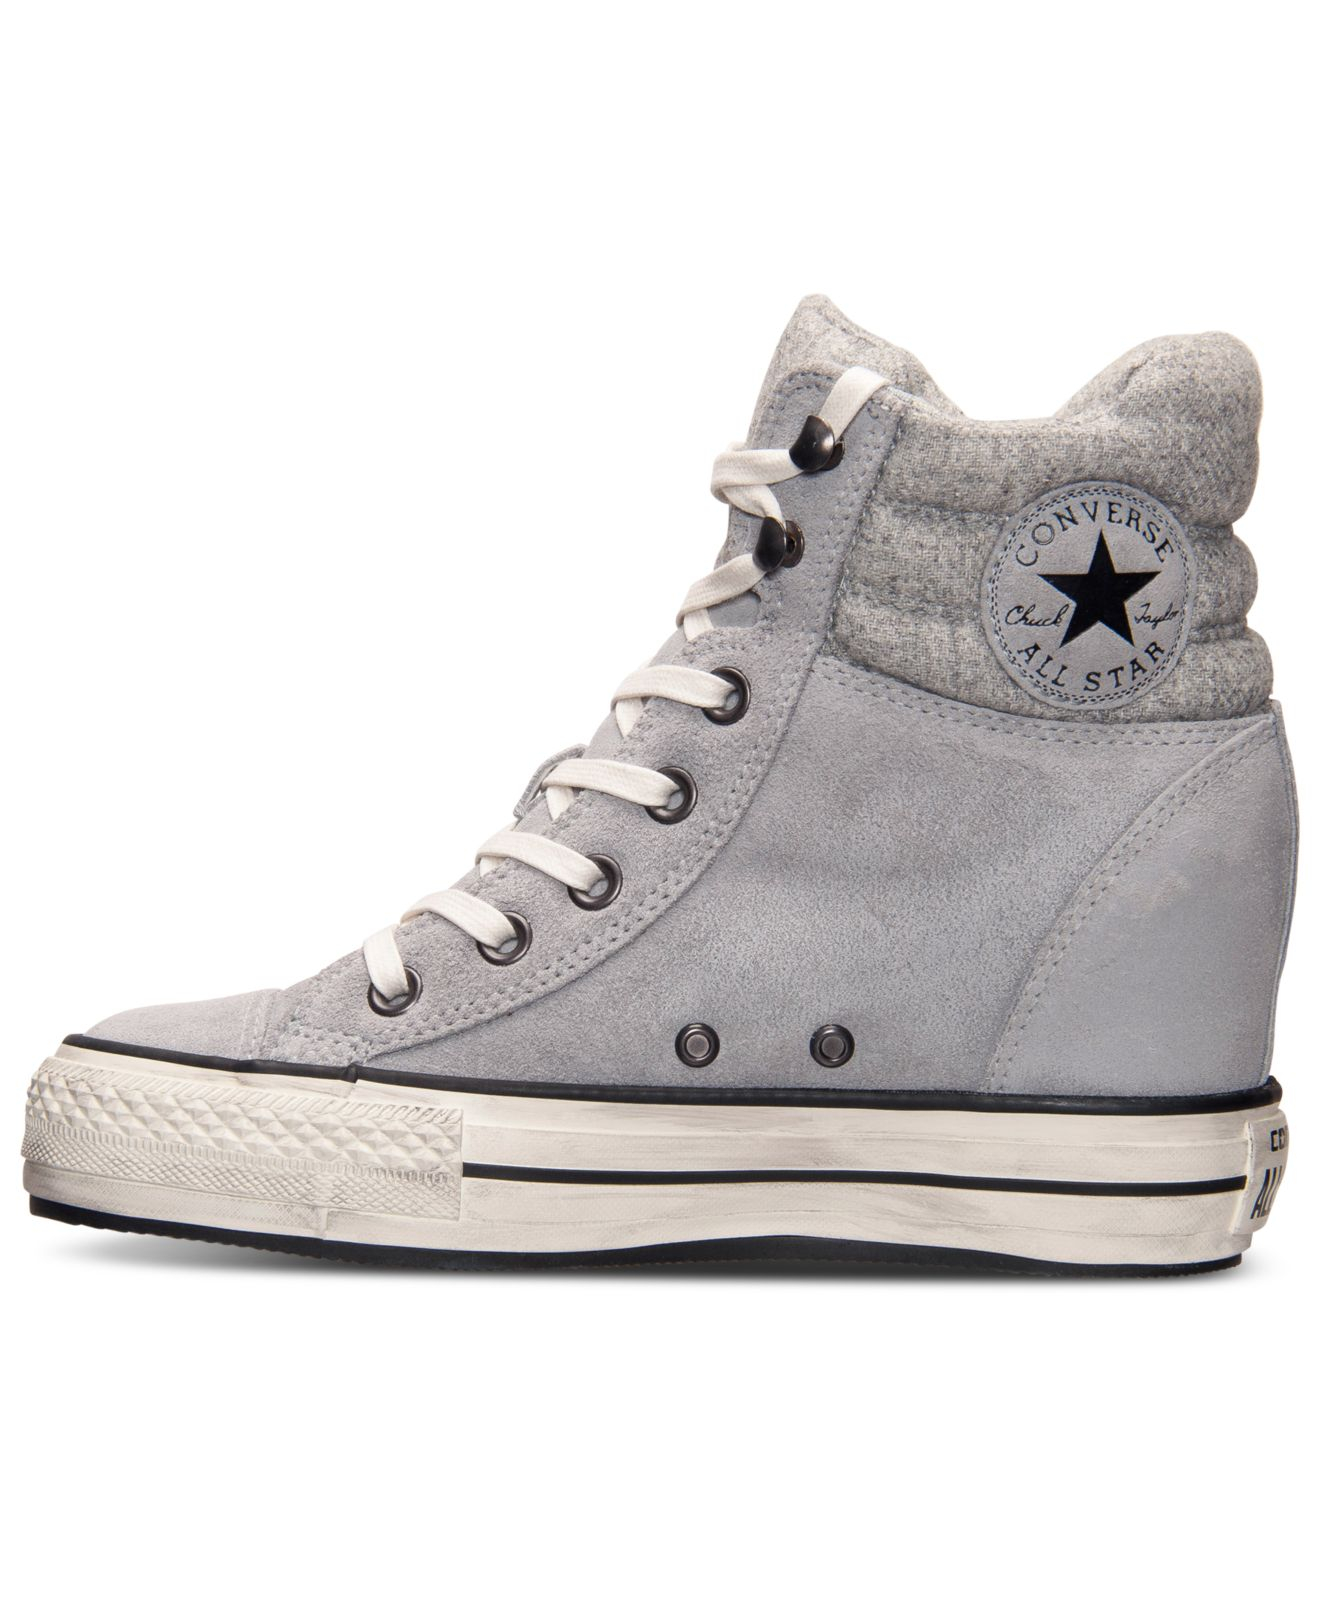 14229f2e55a8 Gallery. Previously sold at  Macy s · Women s Converse Platform ...